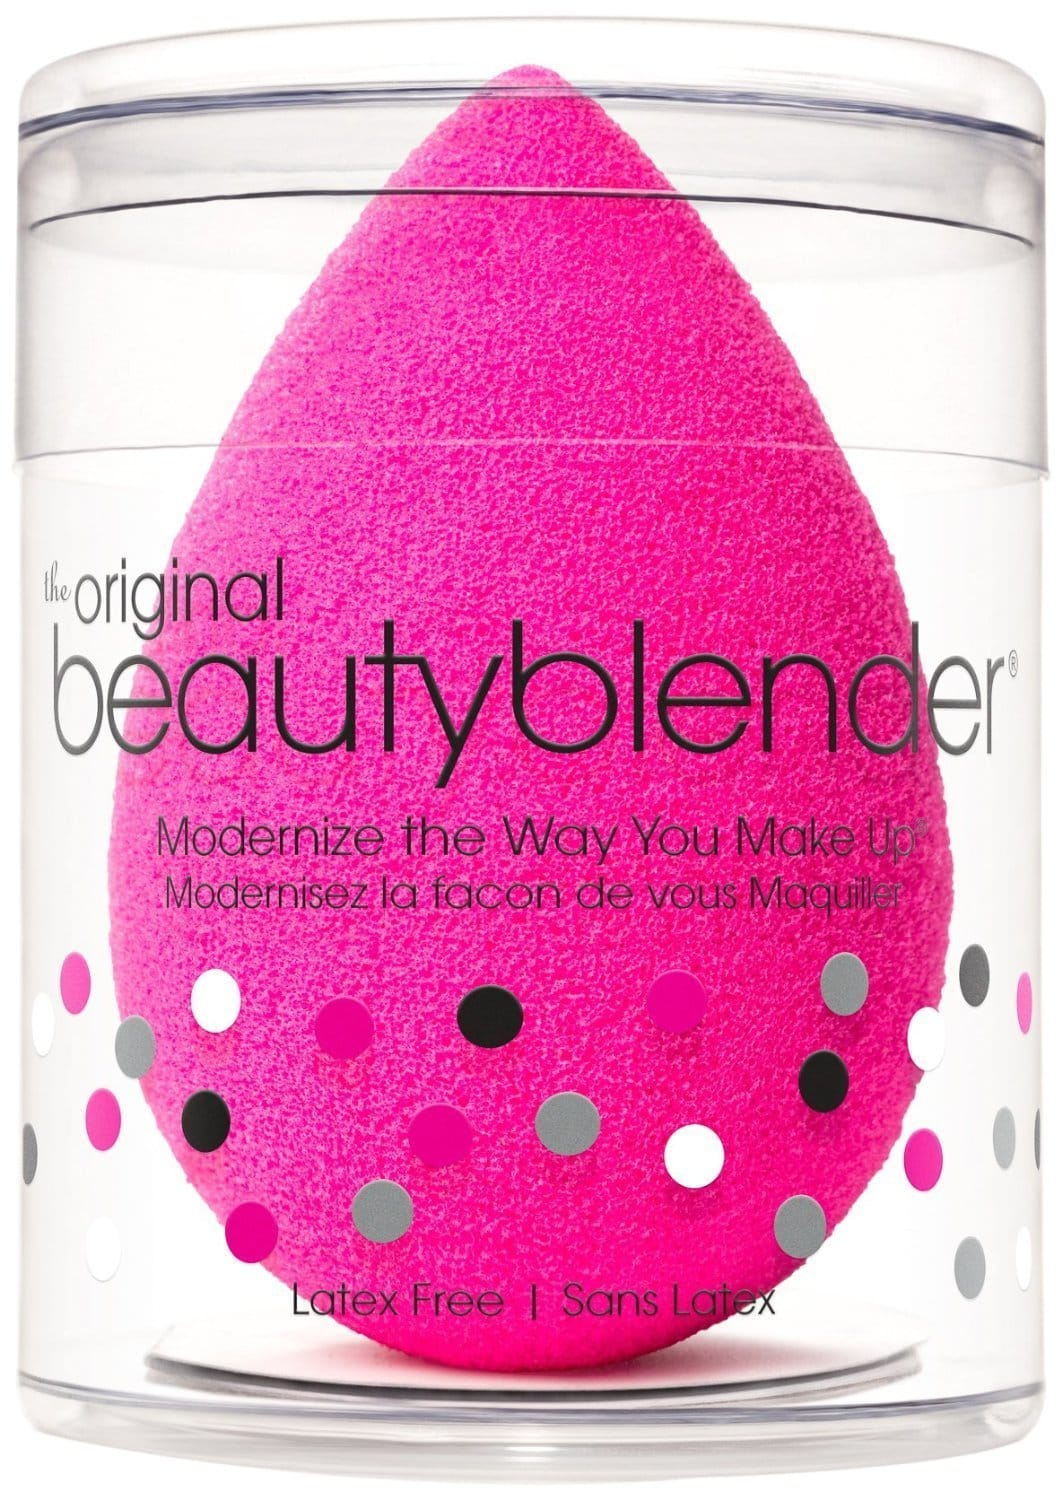 By far one of our very favorite beauty products!